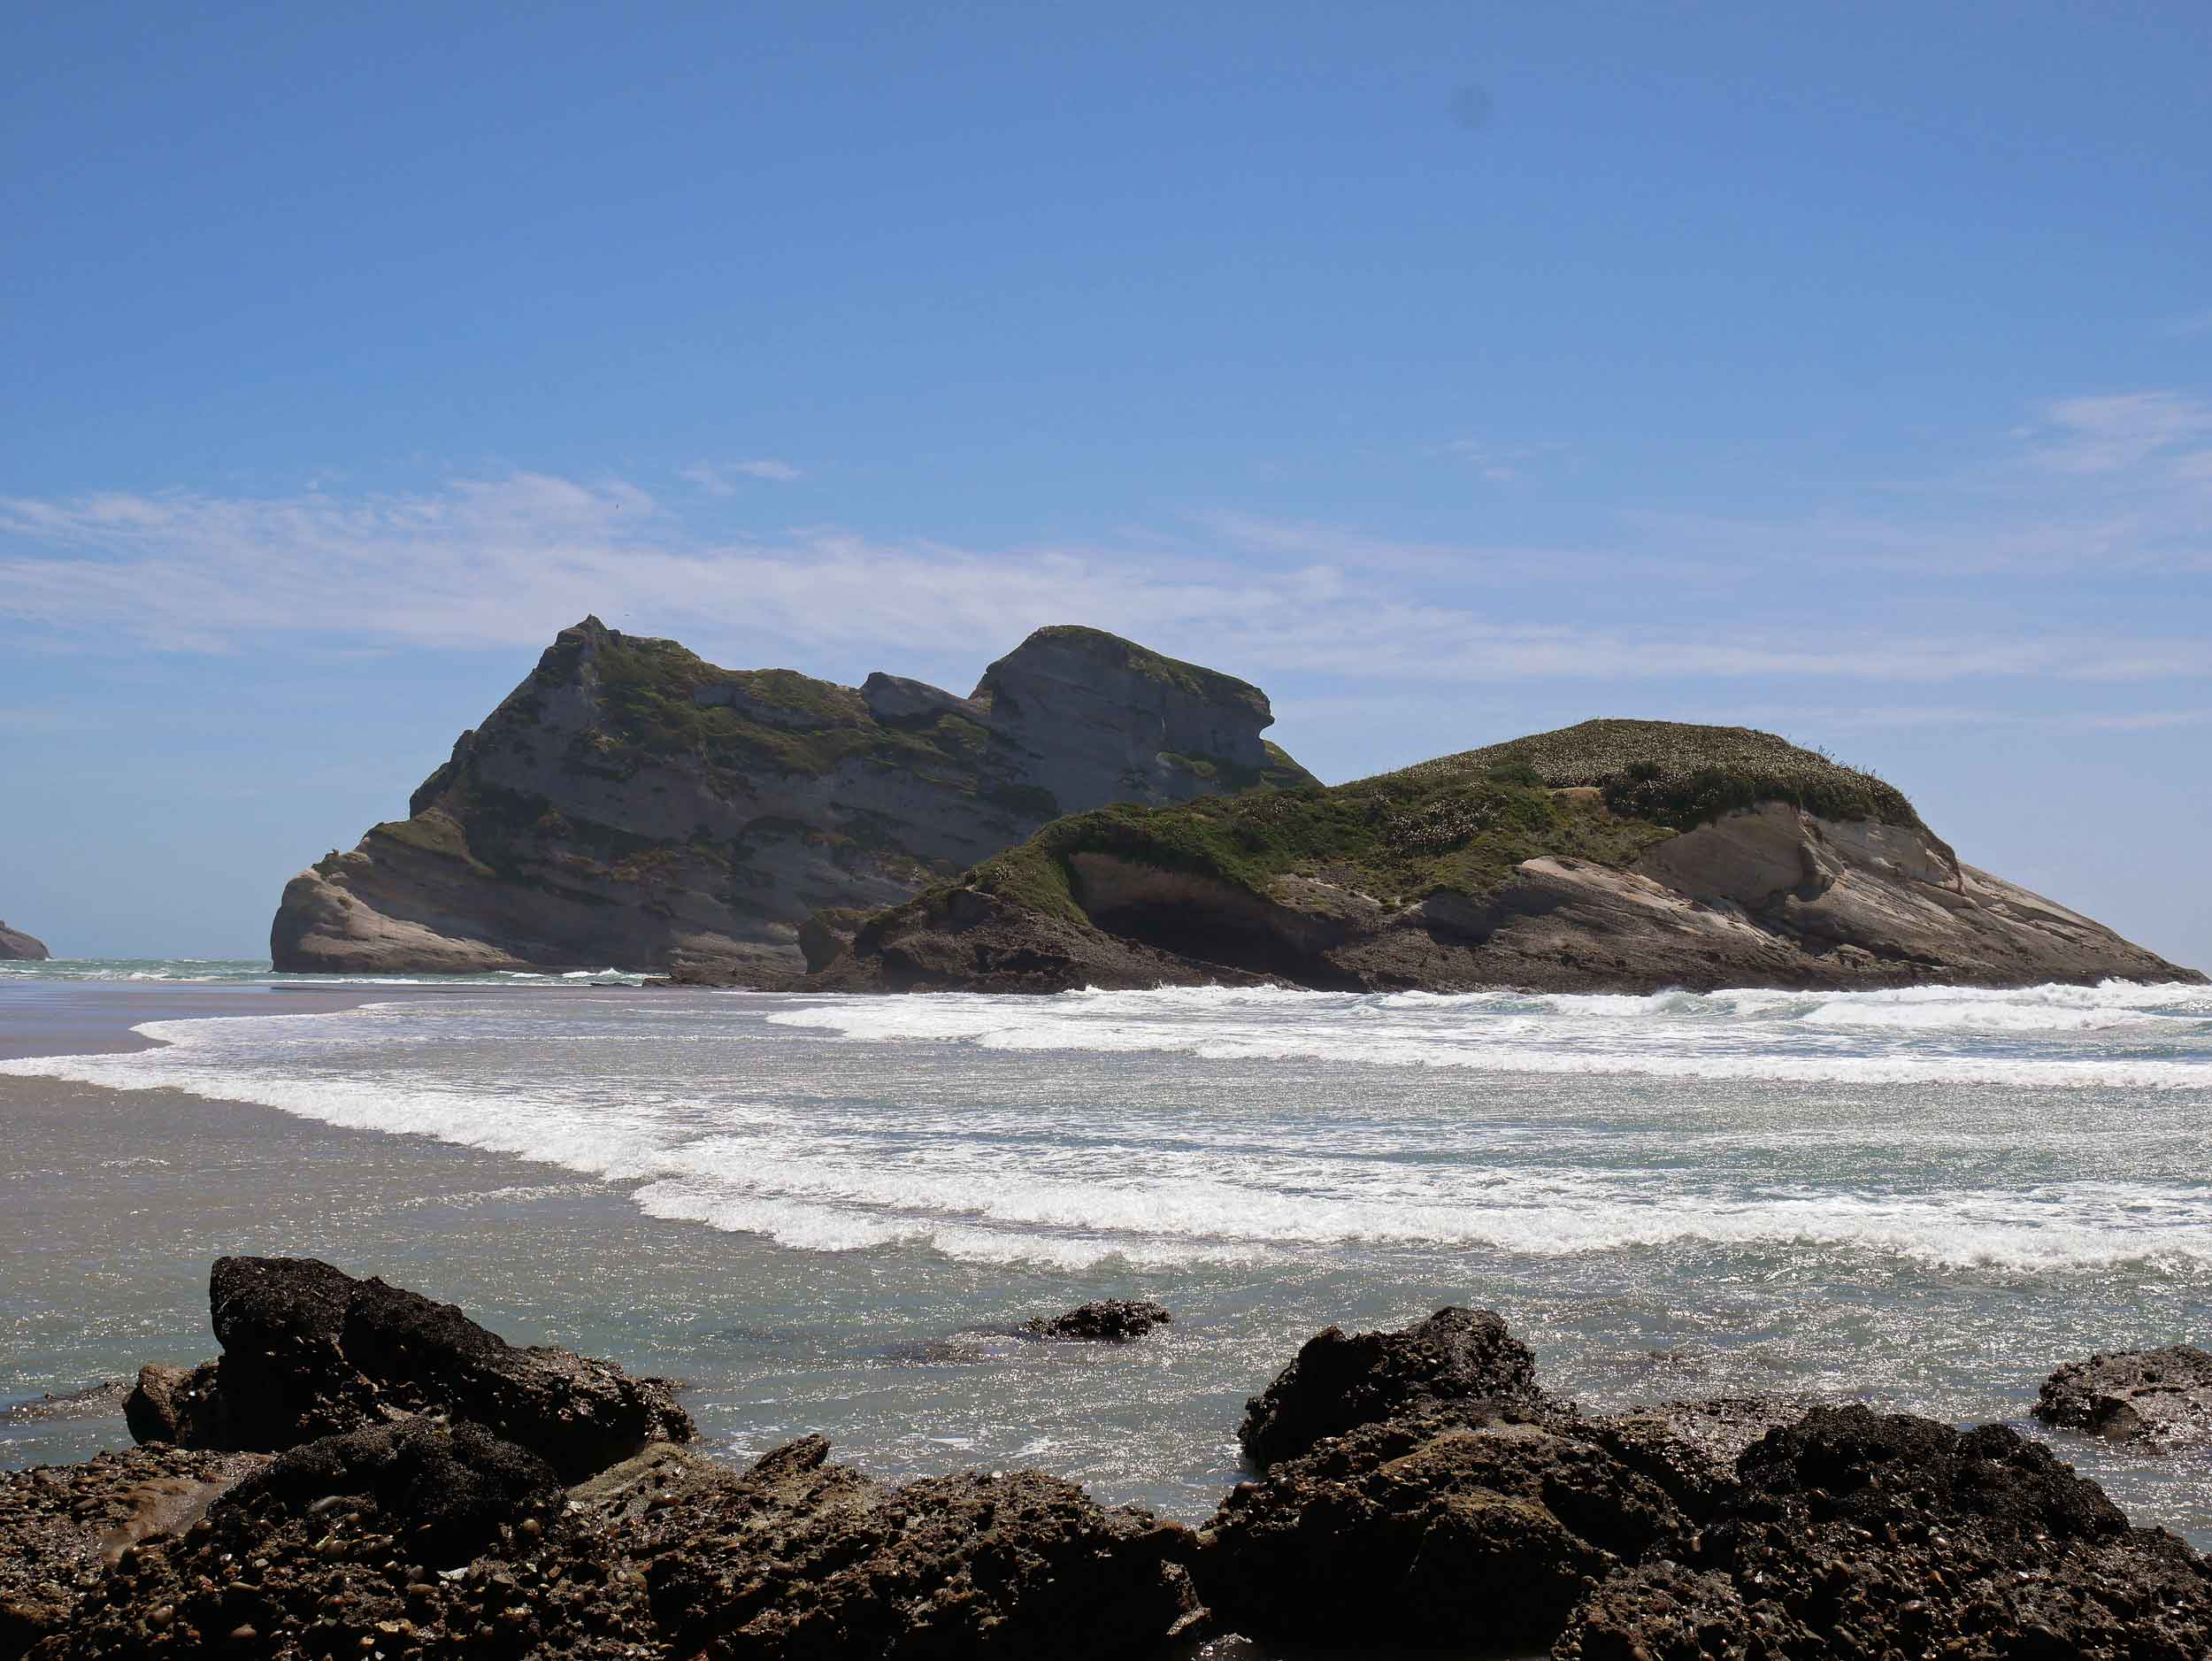 Cliffs border Wharariki Beach with the famous Archway Islands dotting the waters and on this particular day, massive wind gusts changing the landscape before our very eyes (Jan 13).